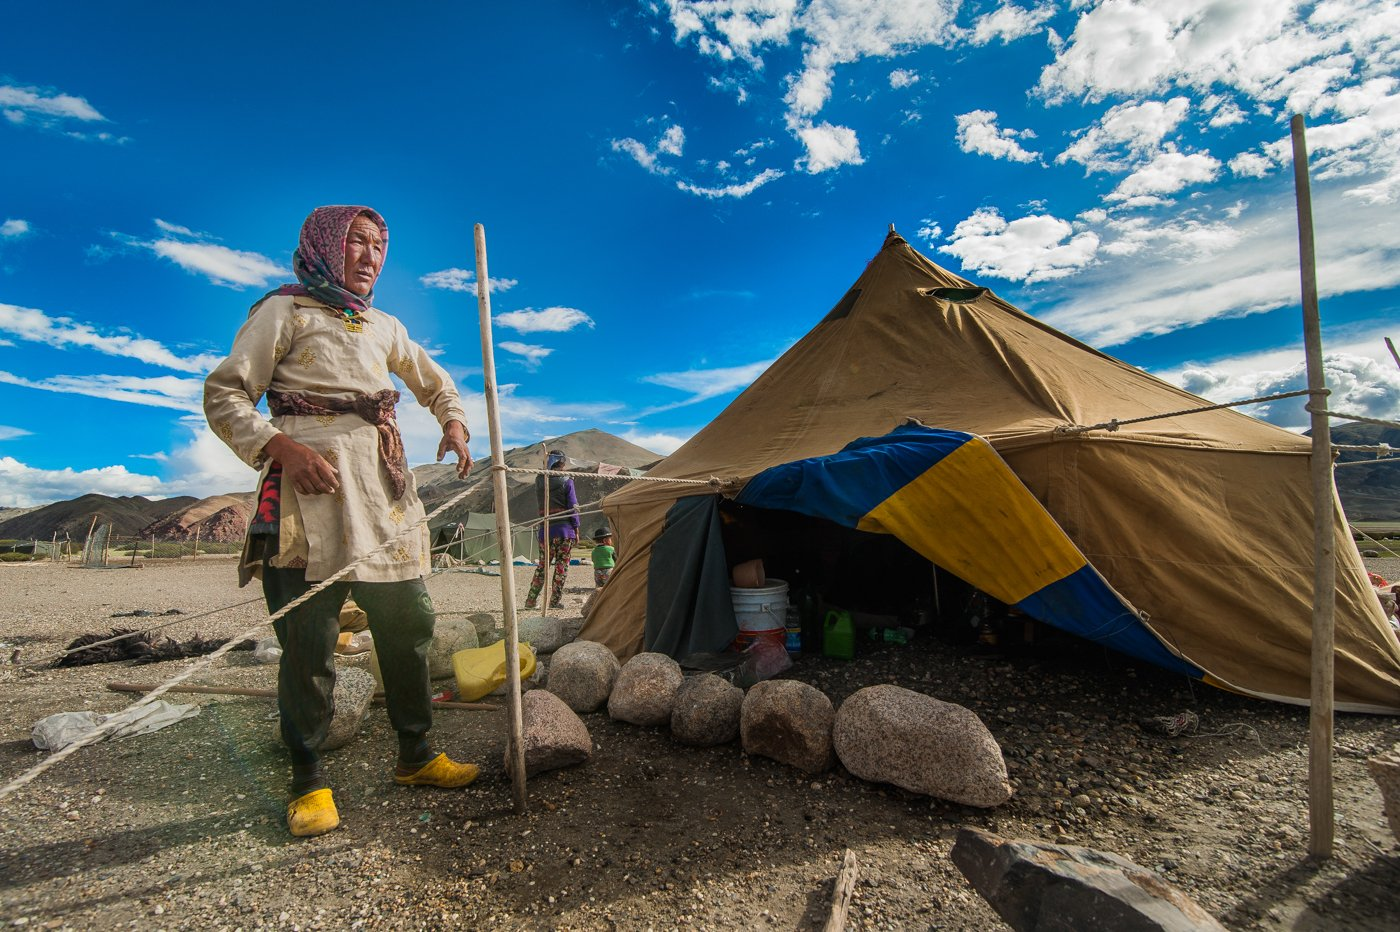 Dohna pitching her family's tent in a highland summer pasture in Hanle valley, Ladakh